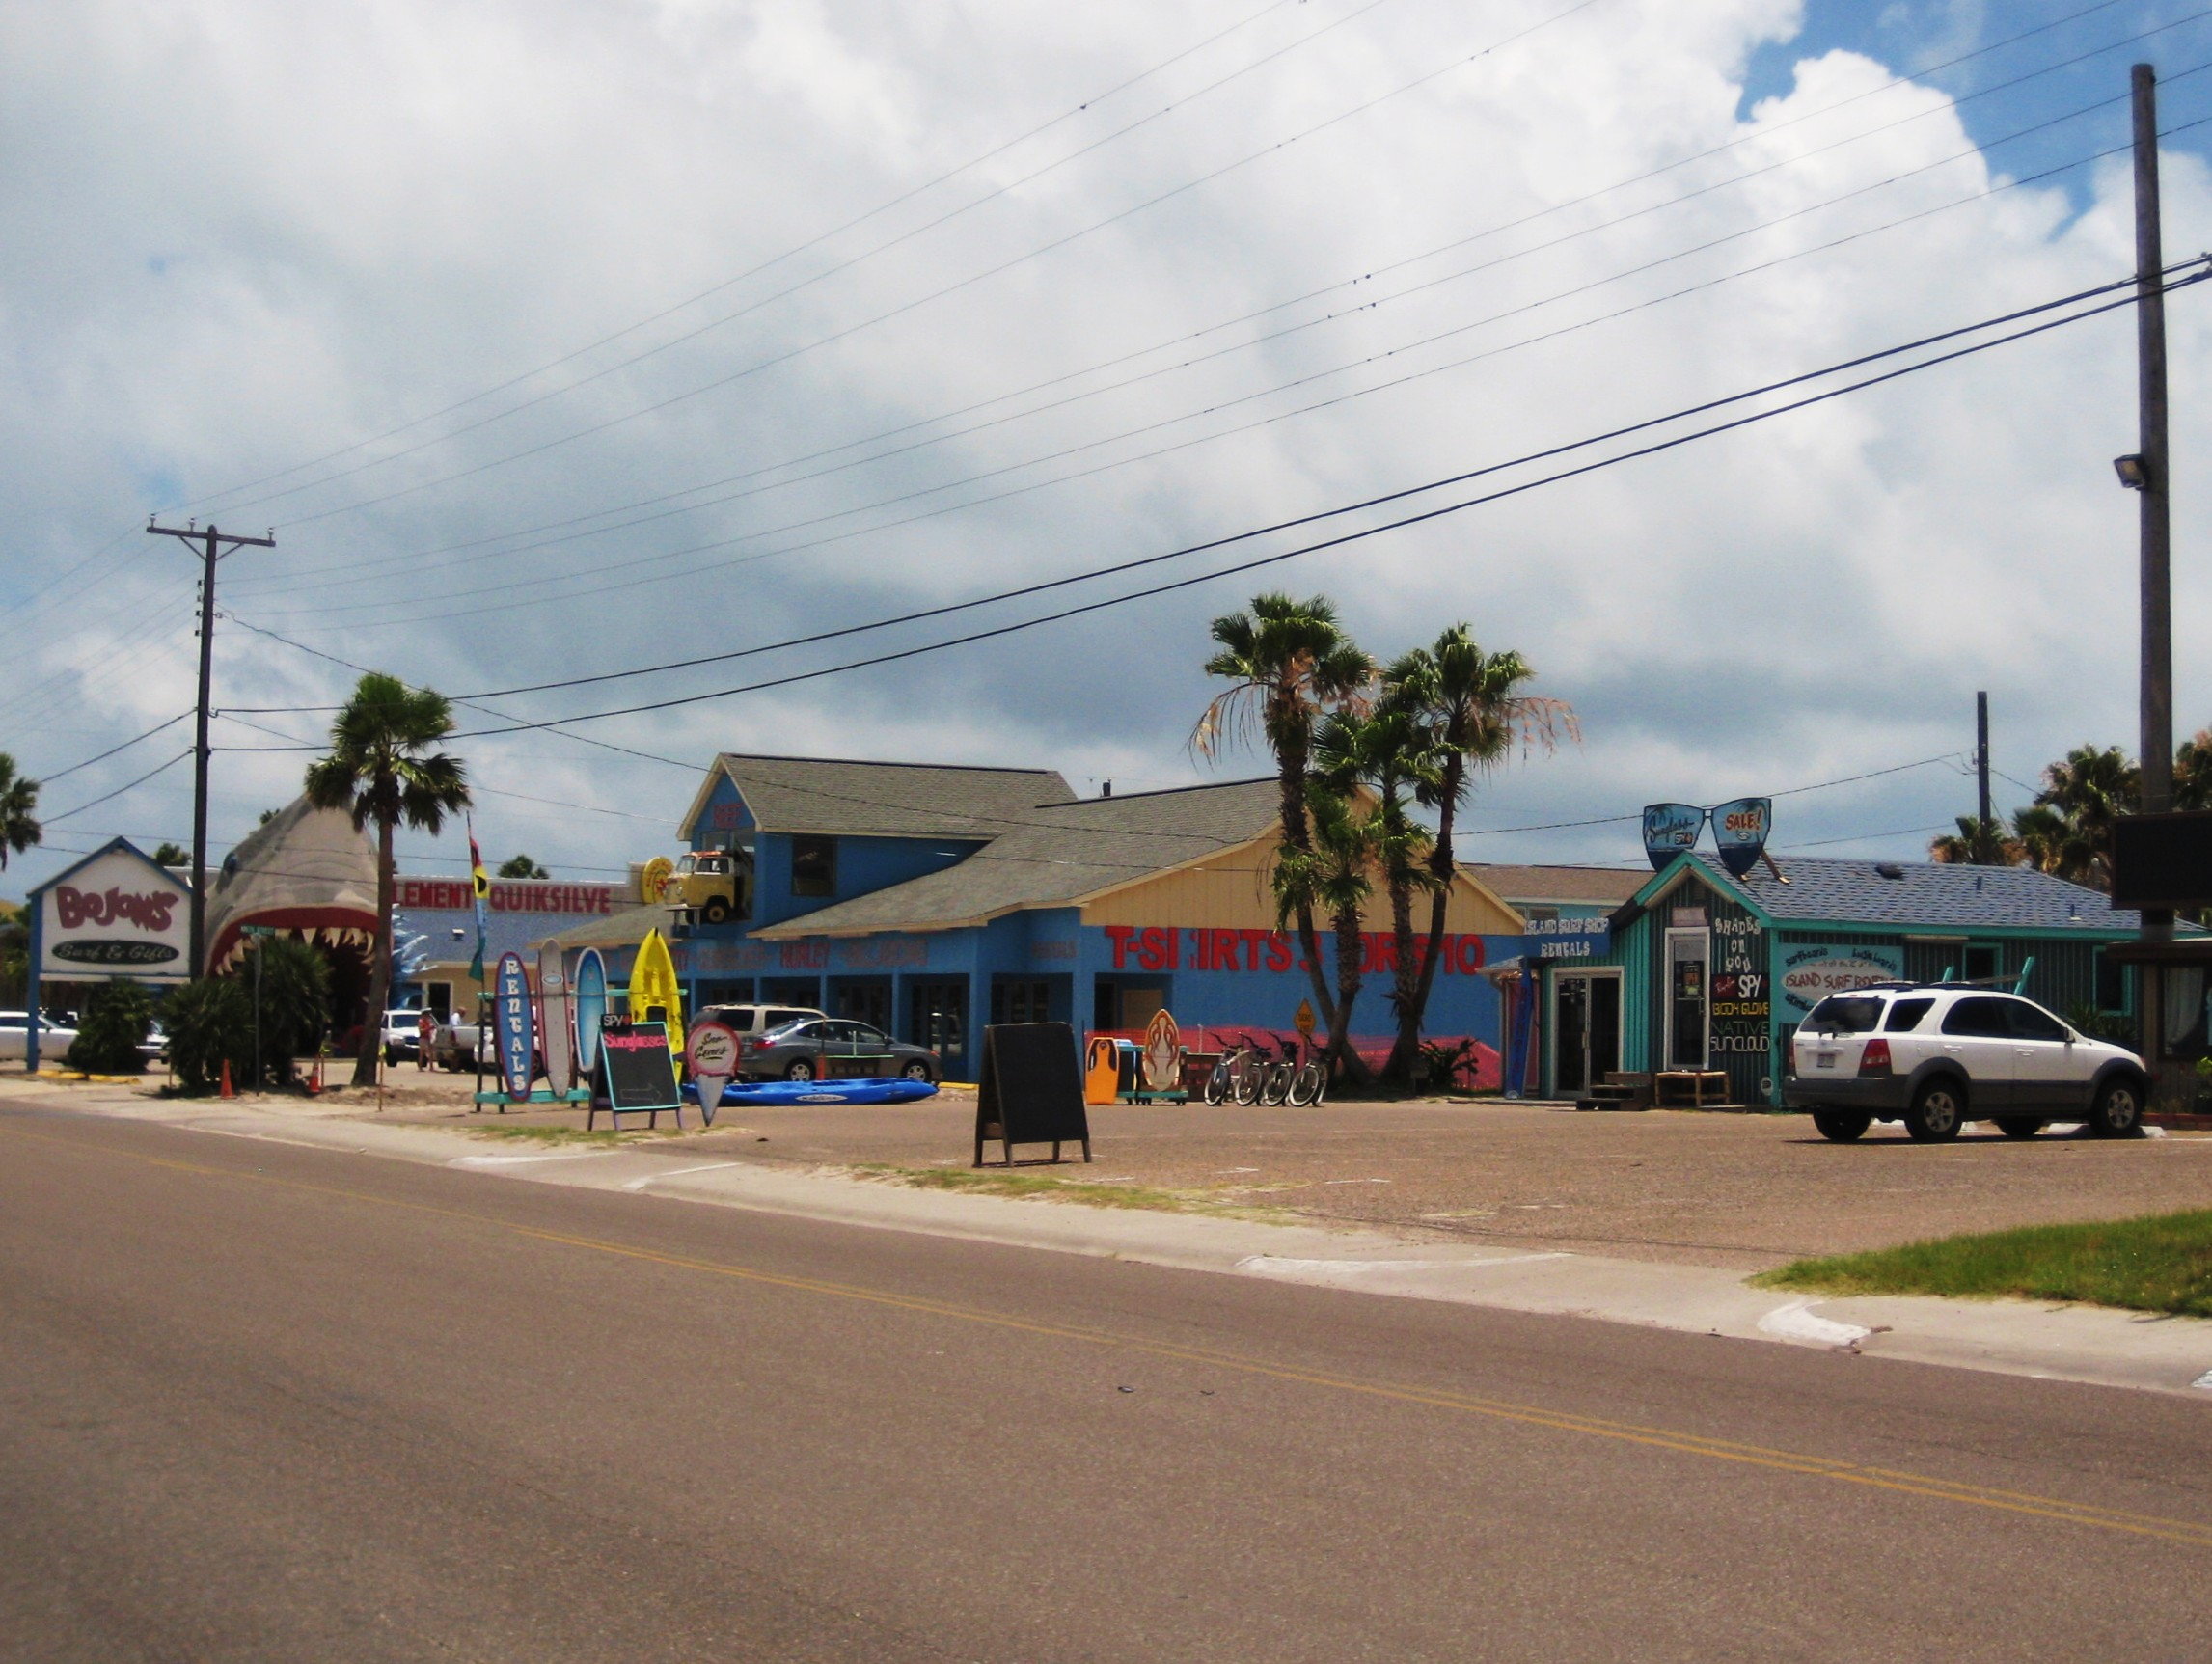 Port aransas texas places bucket list pinterest for Port a texas